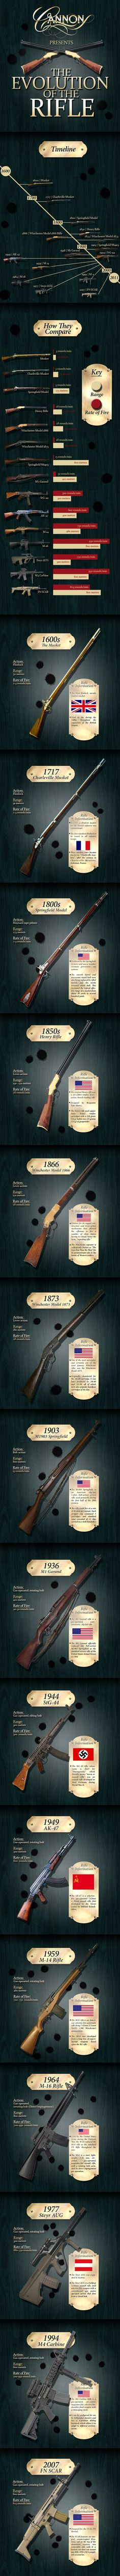 Evolution of the Rifle graphic created by DSM